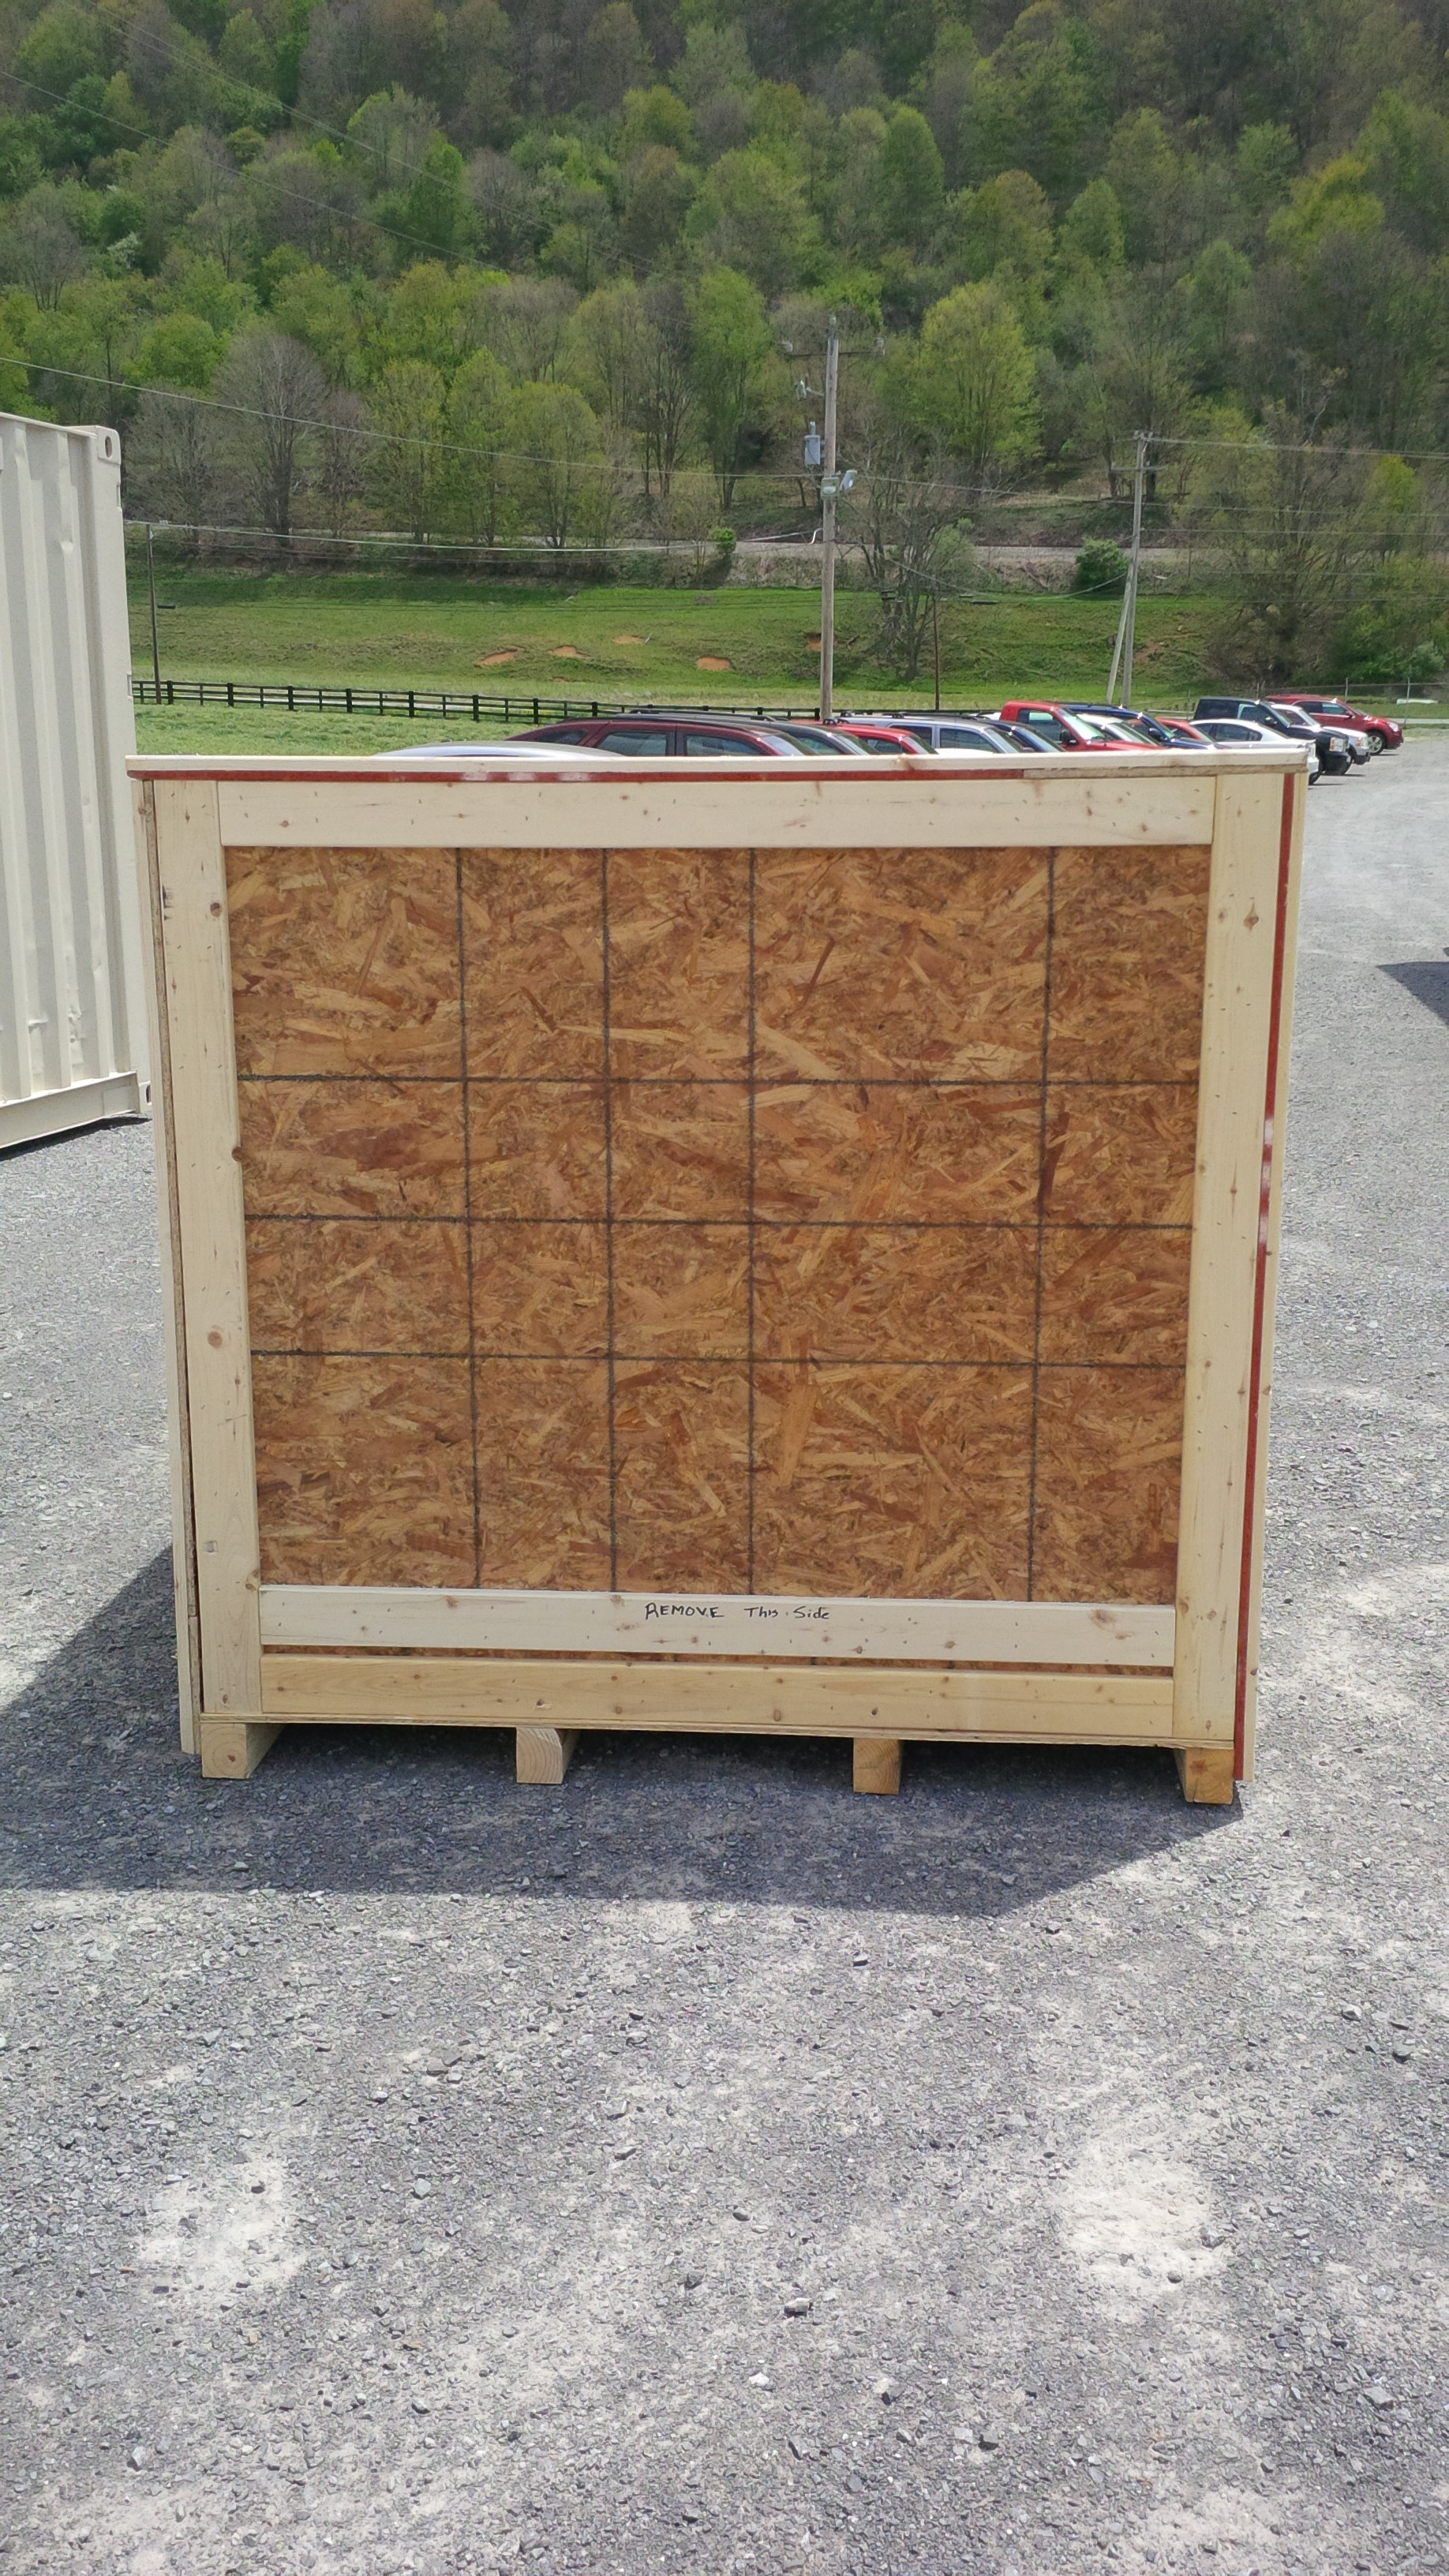 Packing Service, Inc. On-Site Custom Wooden Crates (1)